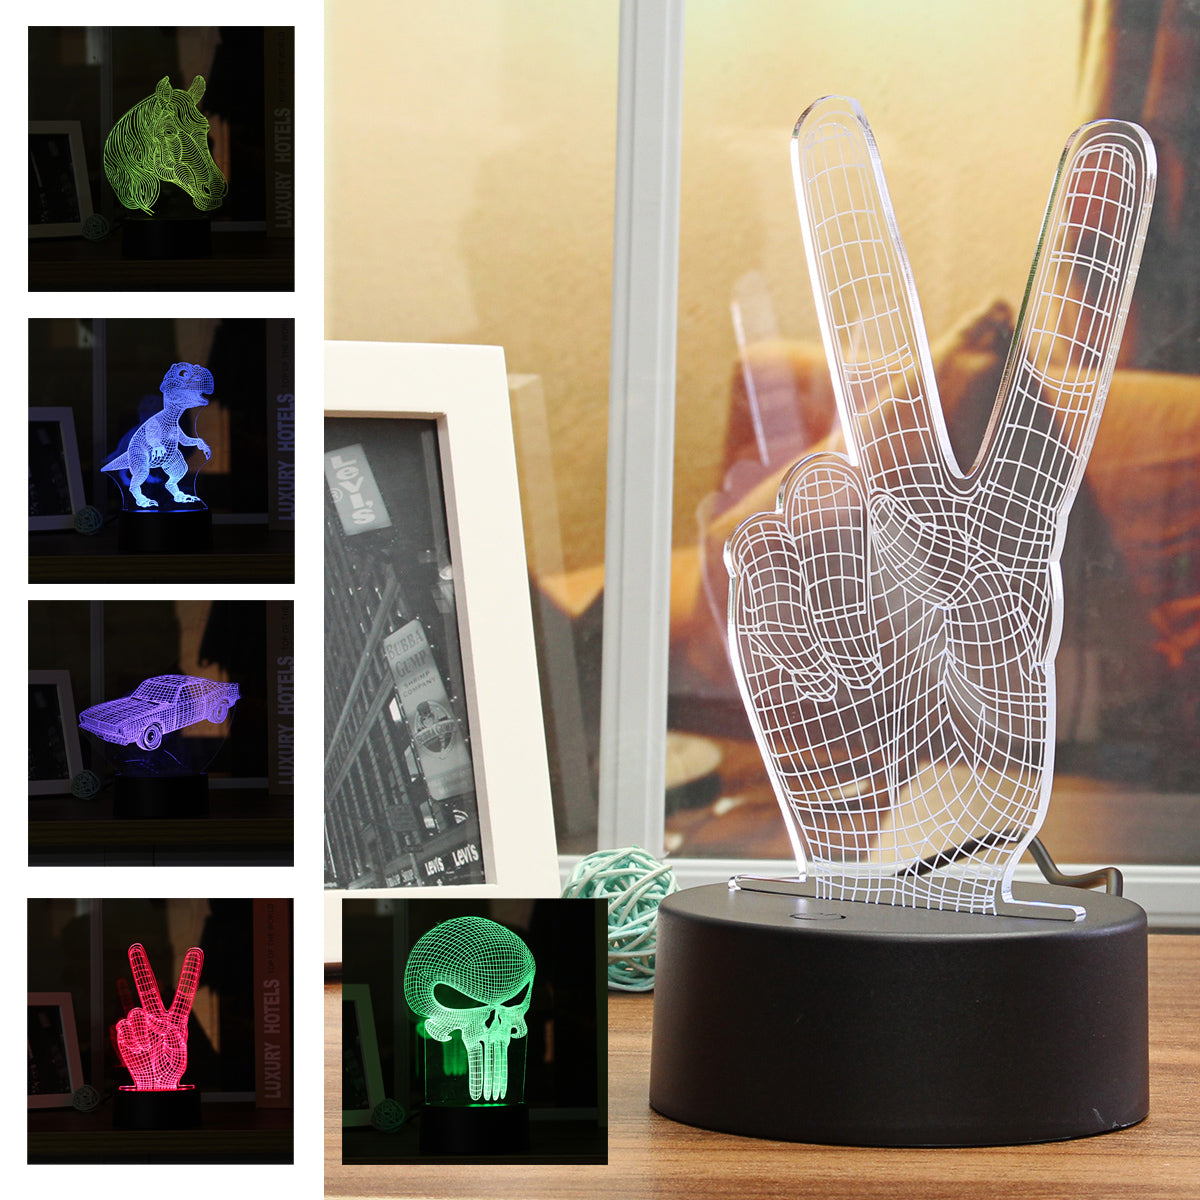 Christmas in July Sale 3D Creatives Night Light Was: $32.99 Now: $12.99 and Free Shipping.